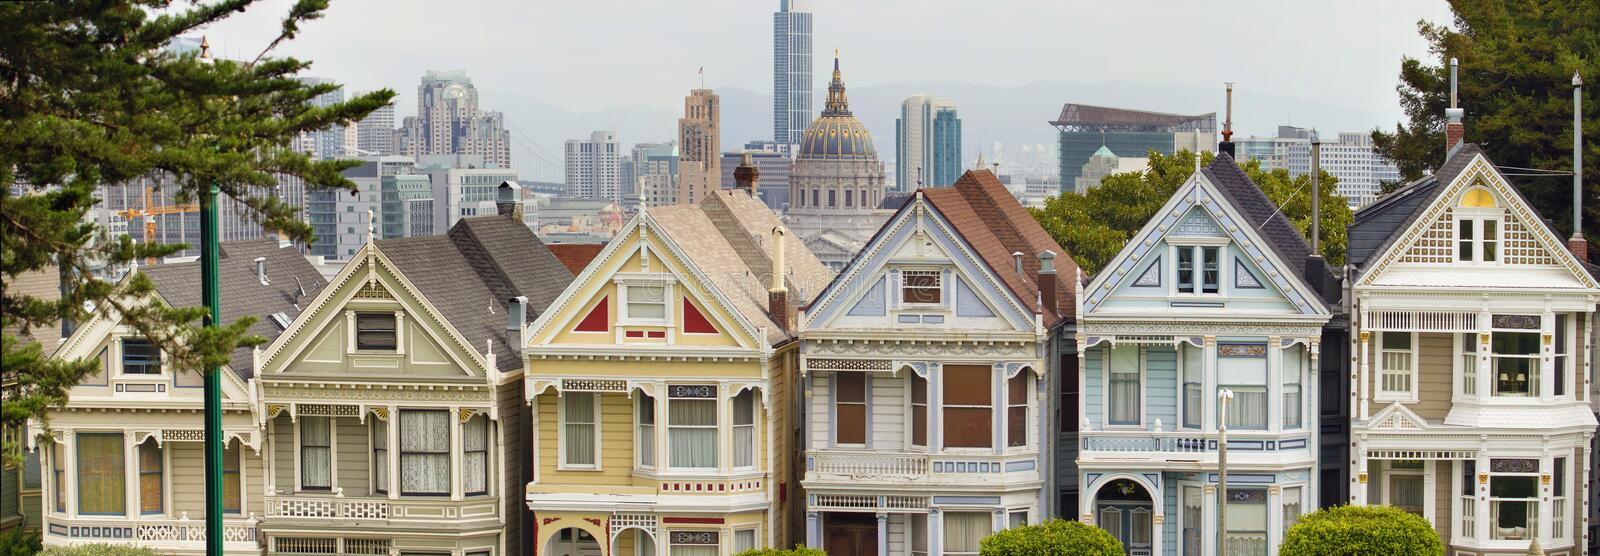 Painted Ladies Row Houses by Alamo Square royalty free stock images